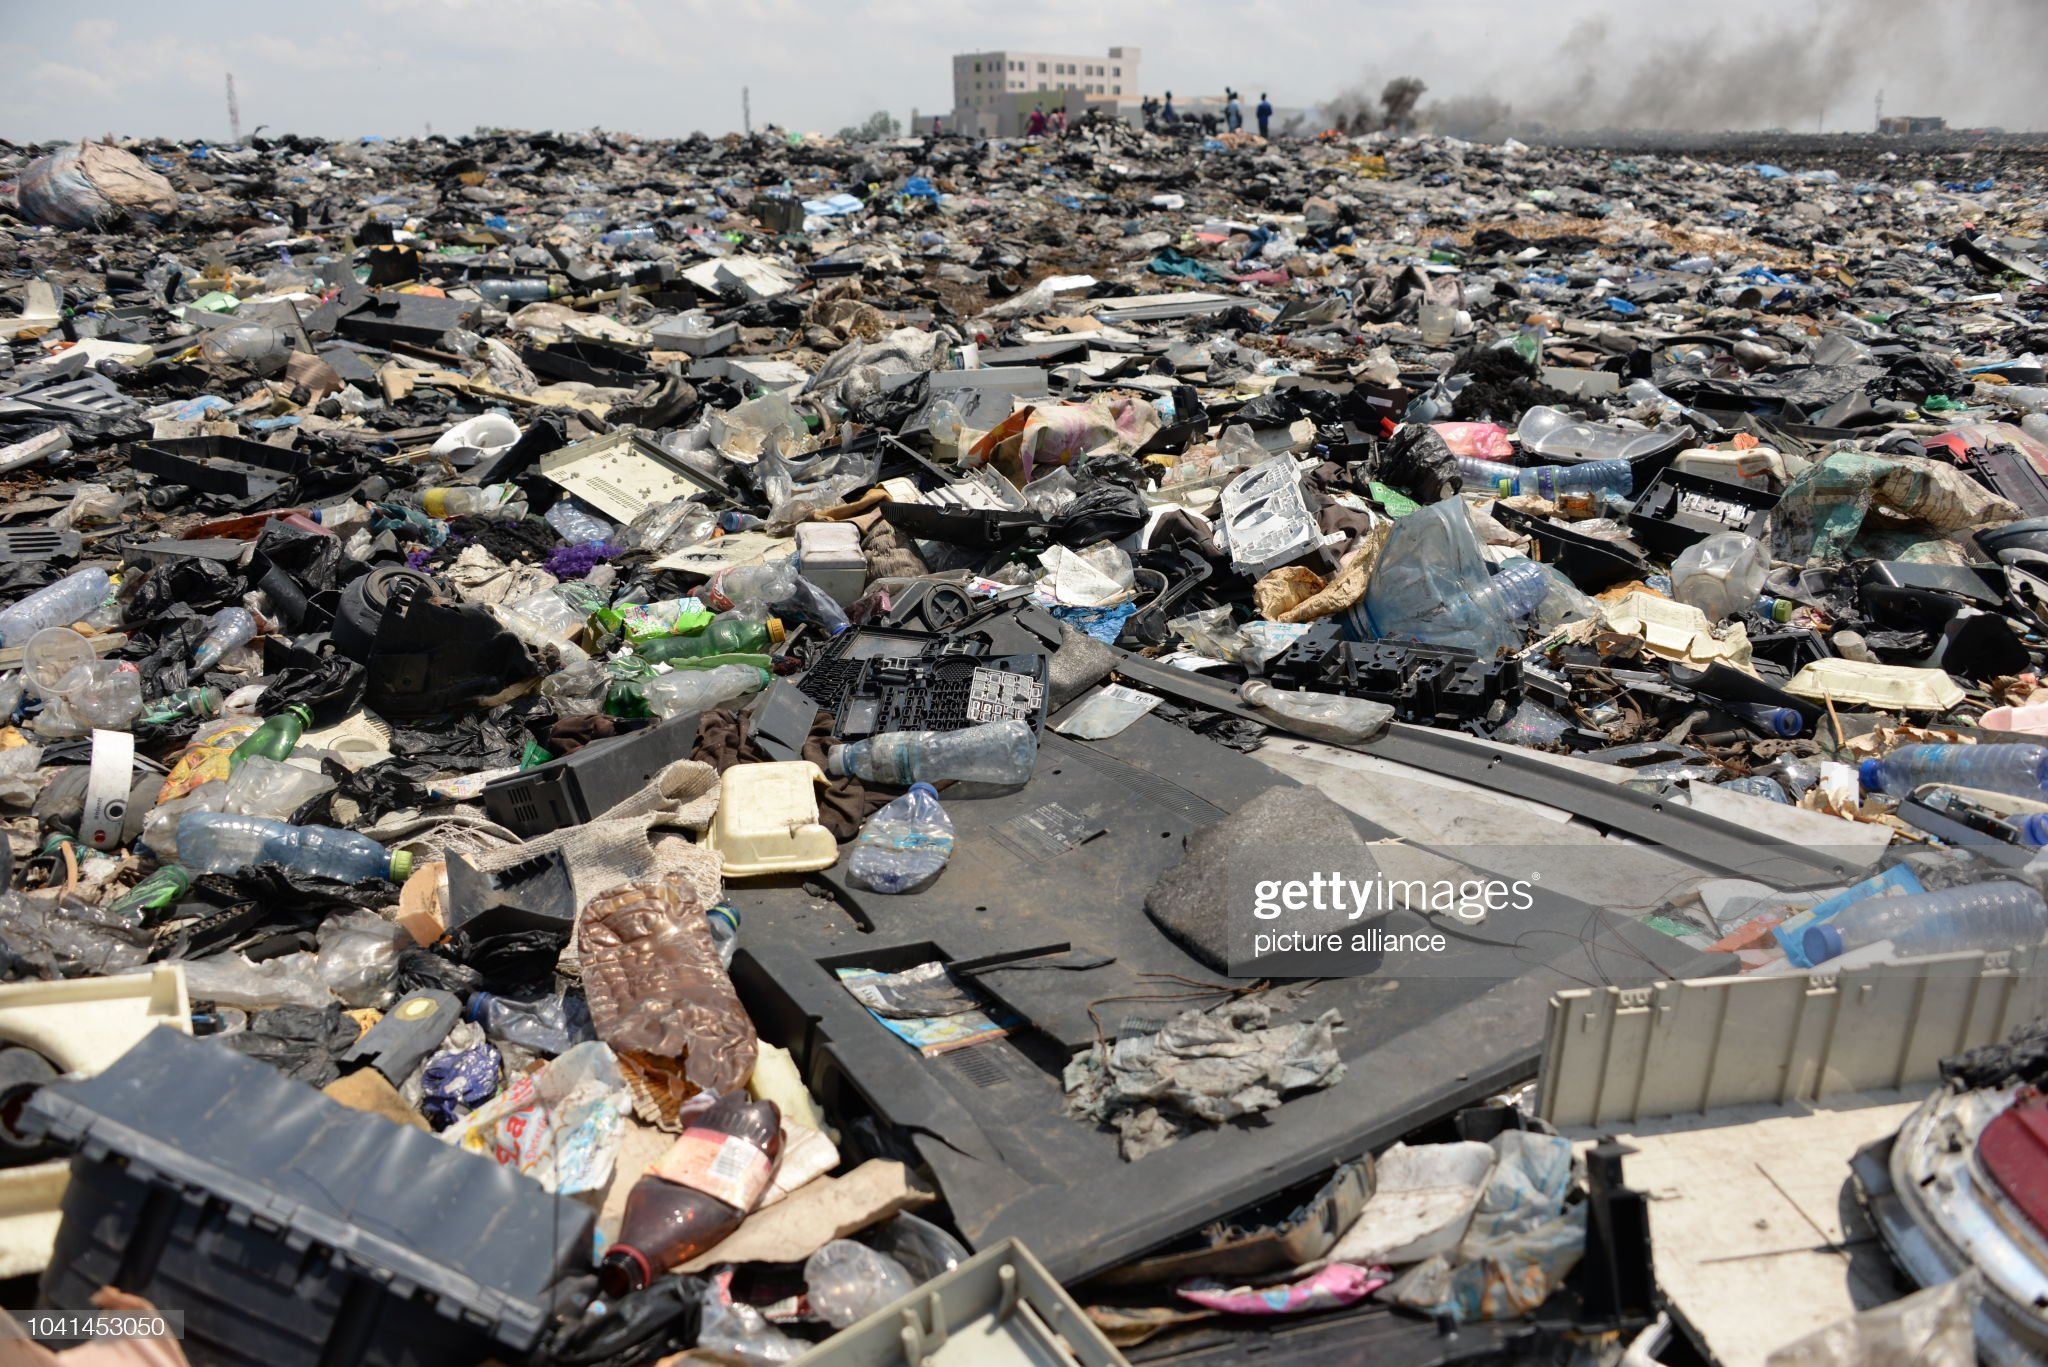 june-2018-ghana-accra-in-the-open-space-behind-the-scrap-yard-of-picture-id1041453050